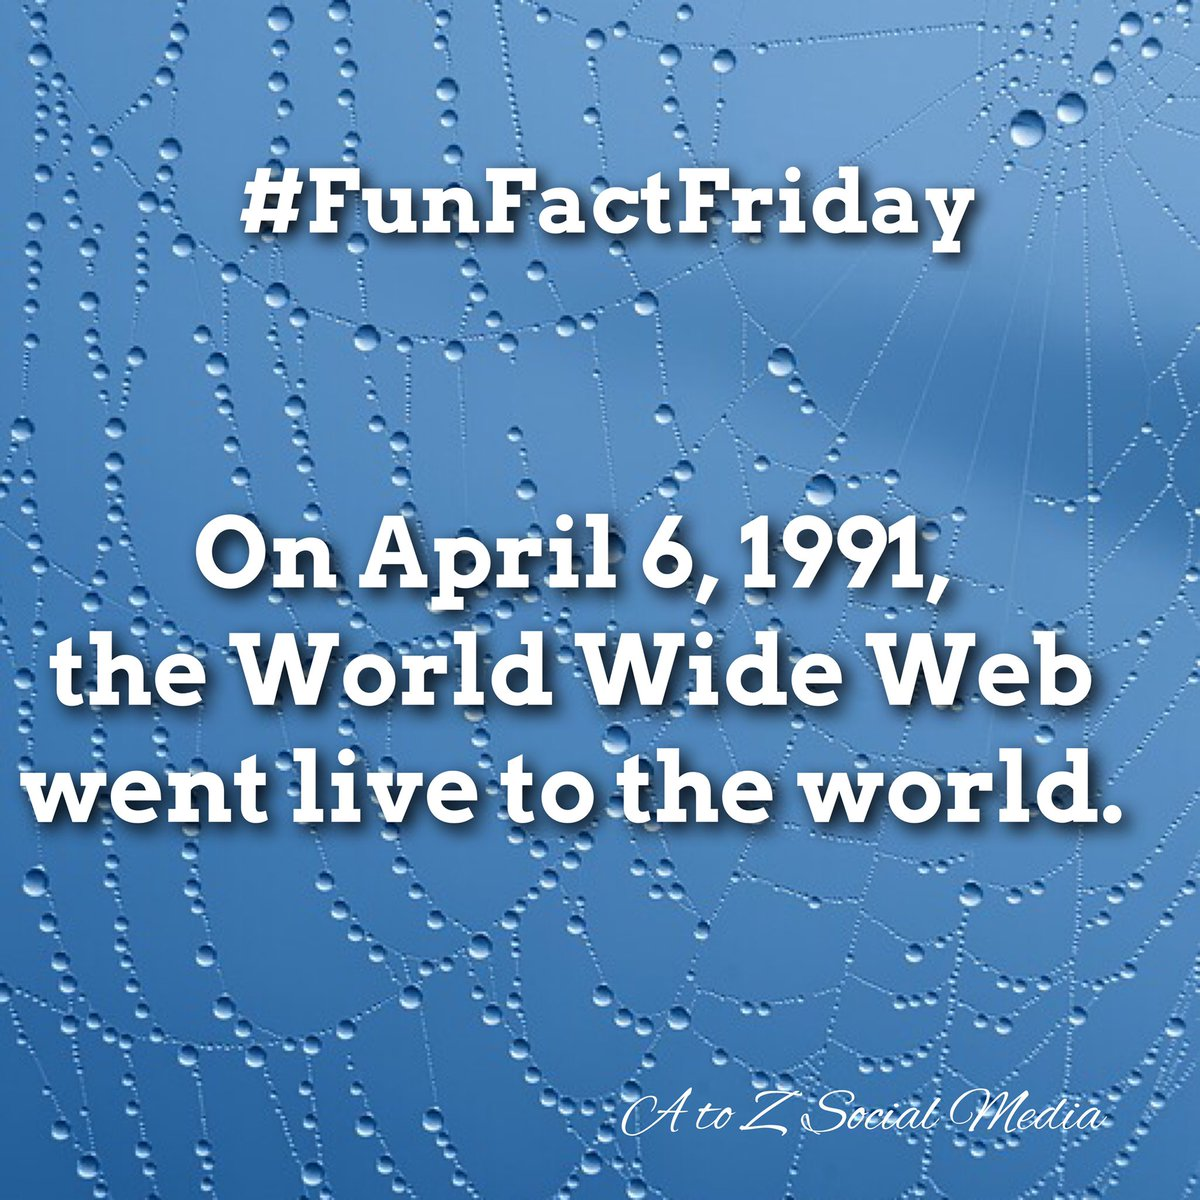 A to Z Social Media's photo on #FunFactFriday